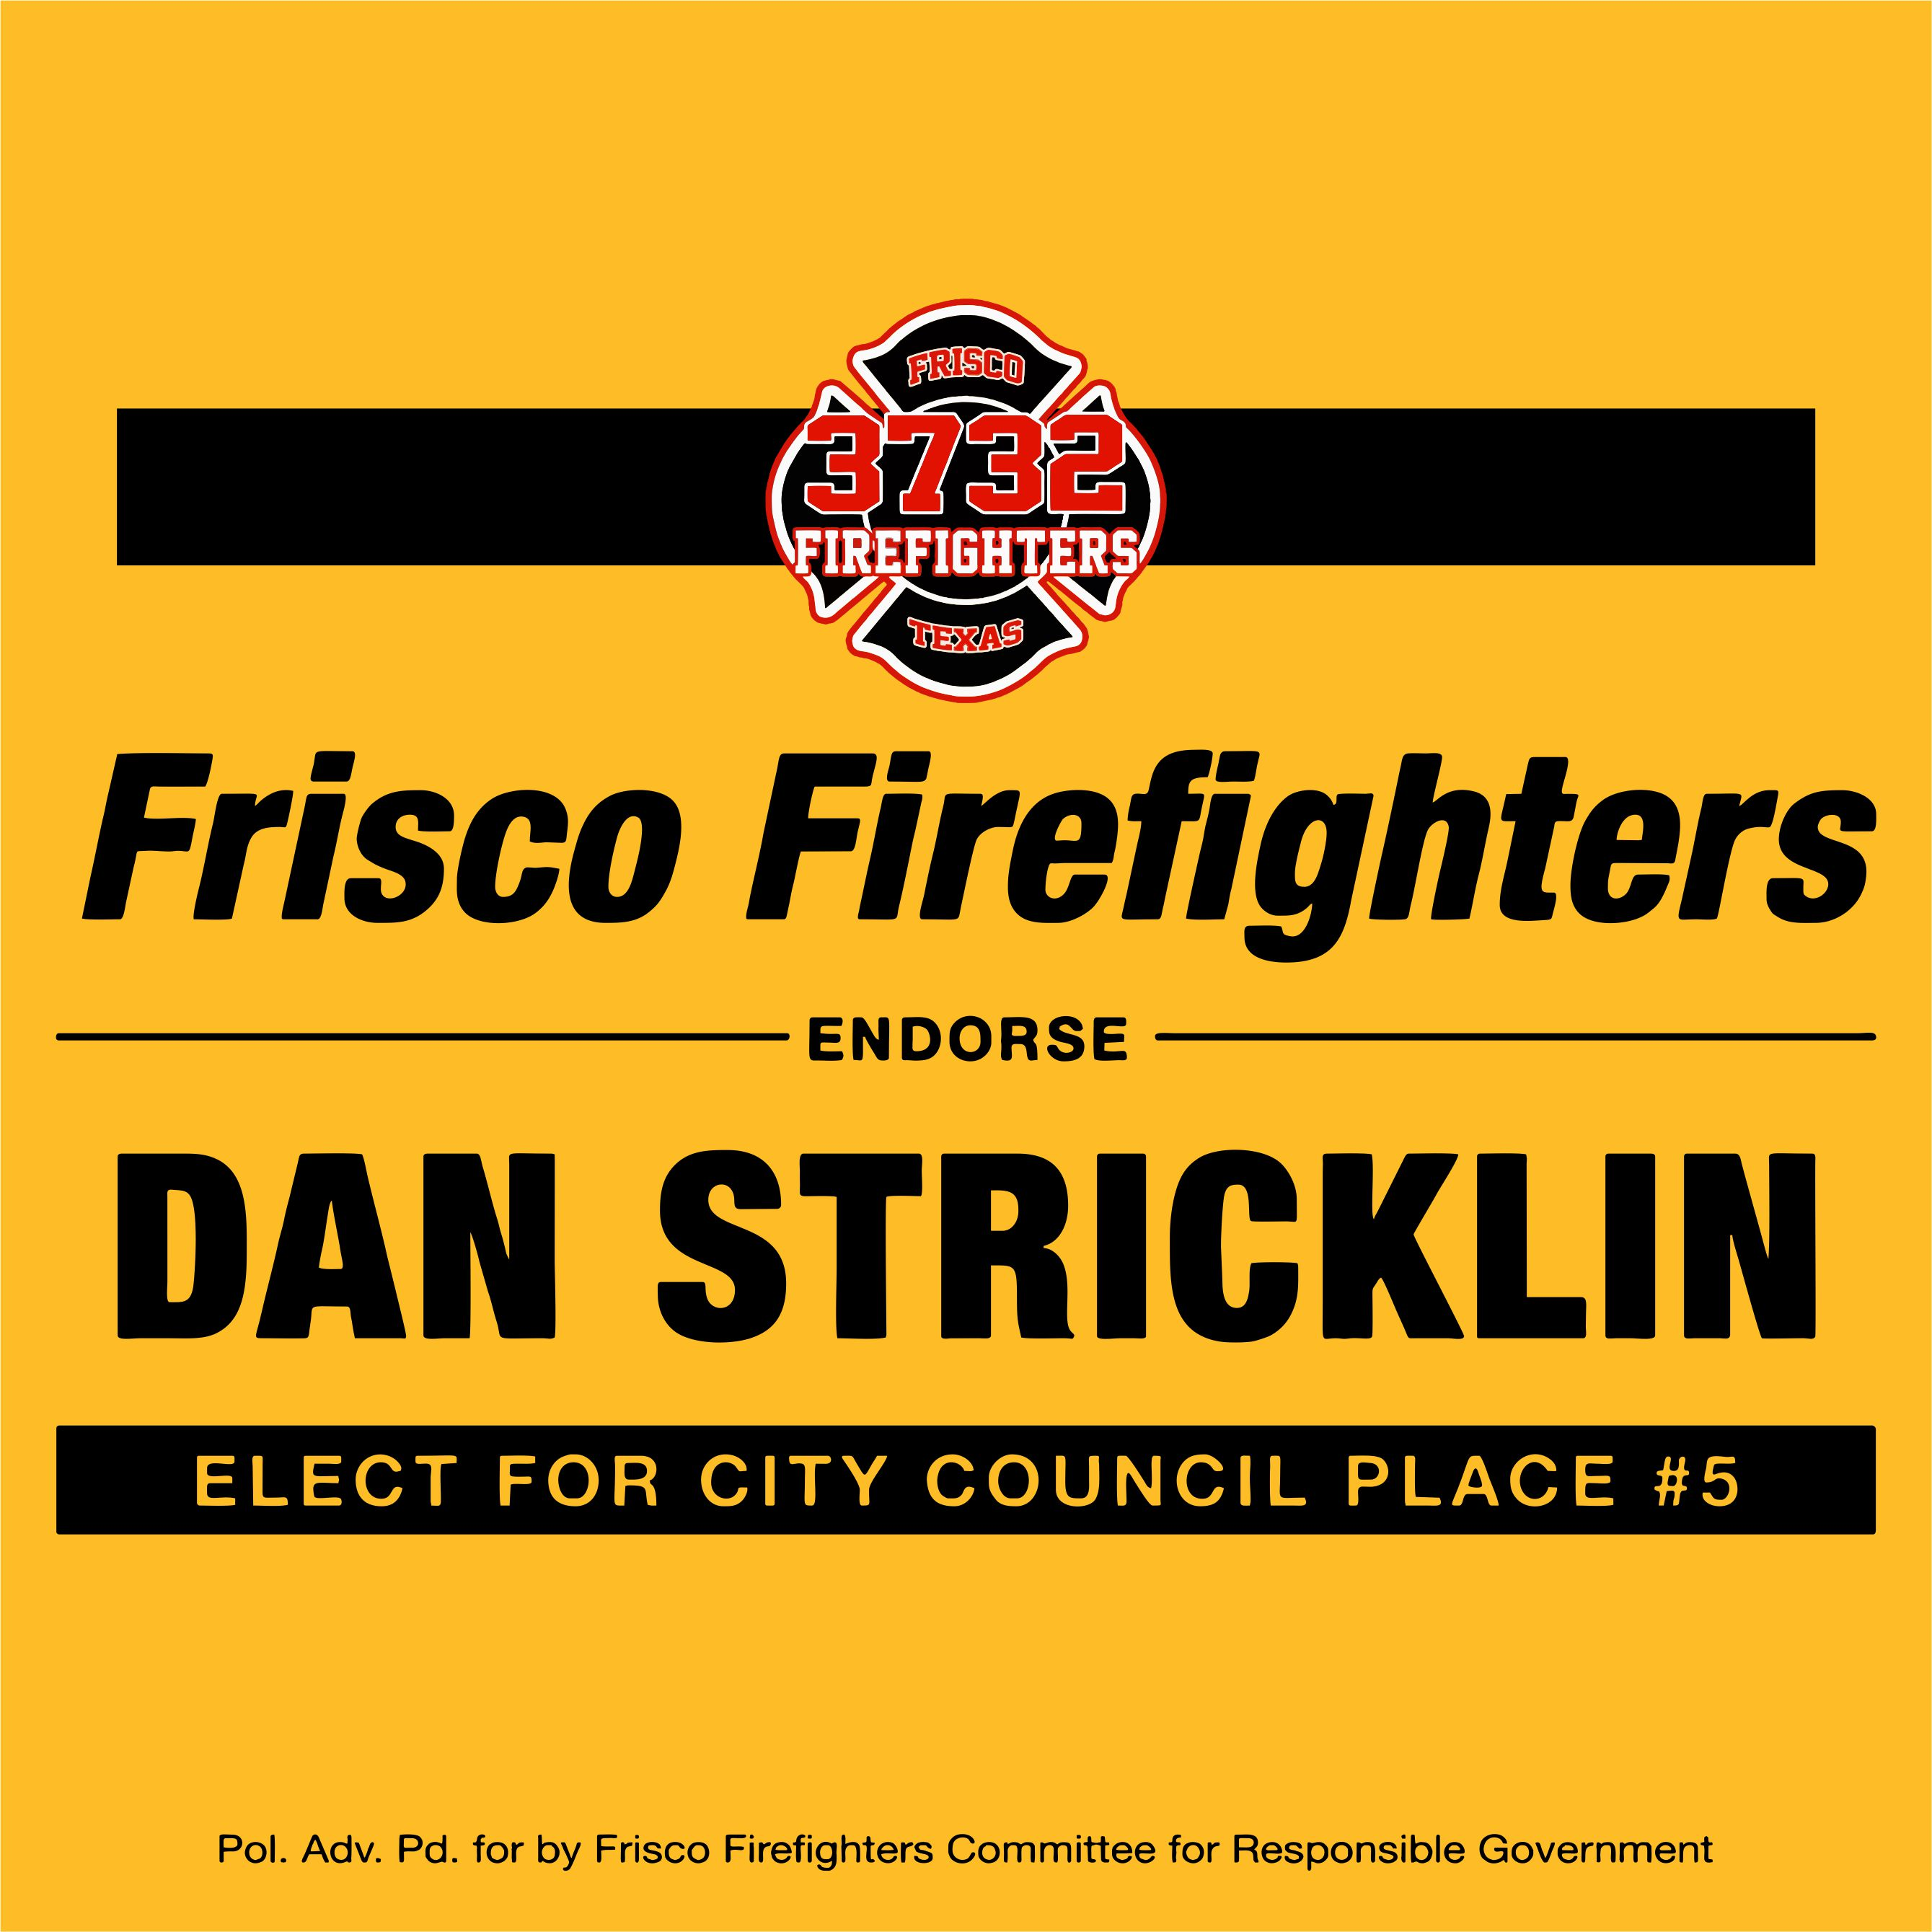 Dan Stricklin